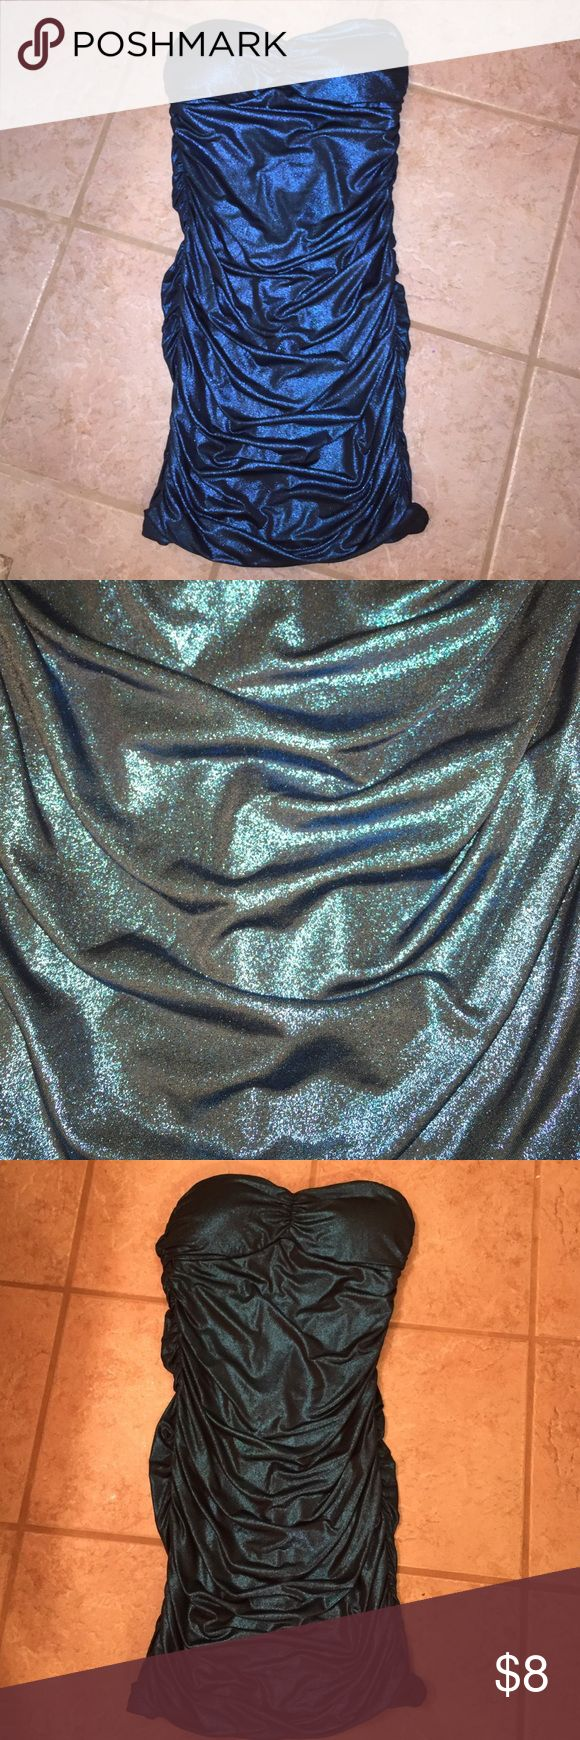 Blue Metallic Bodycon Dress This tight fit blue metallic bodycon dress would work wonders on a girls night out! Only been worn once. Forever 21 Dresses Mini